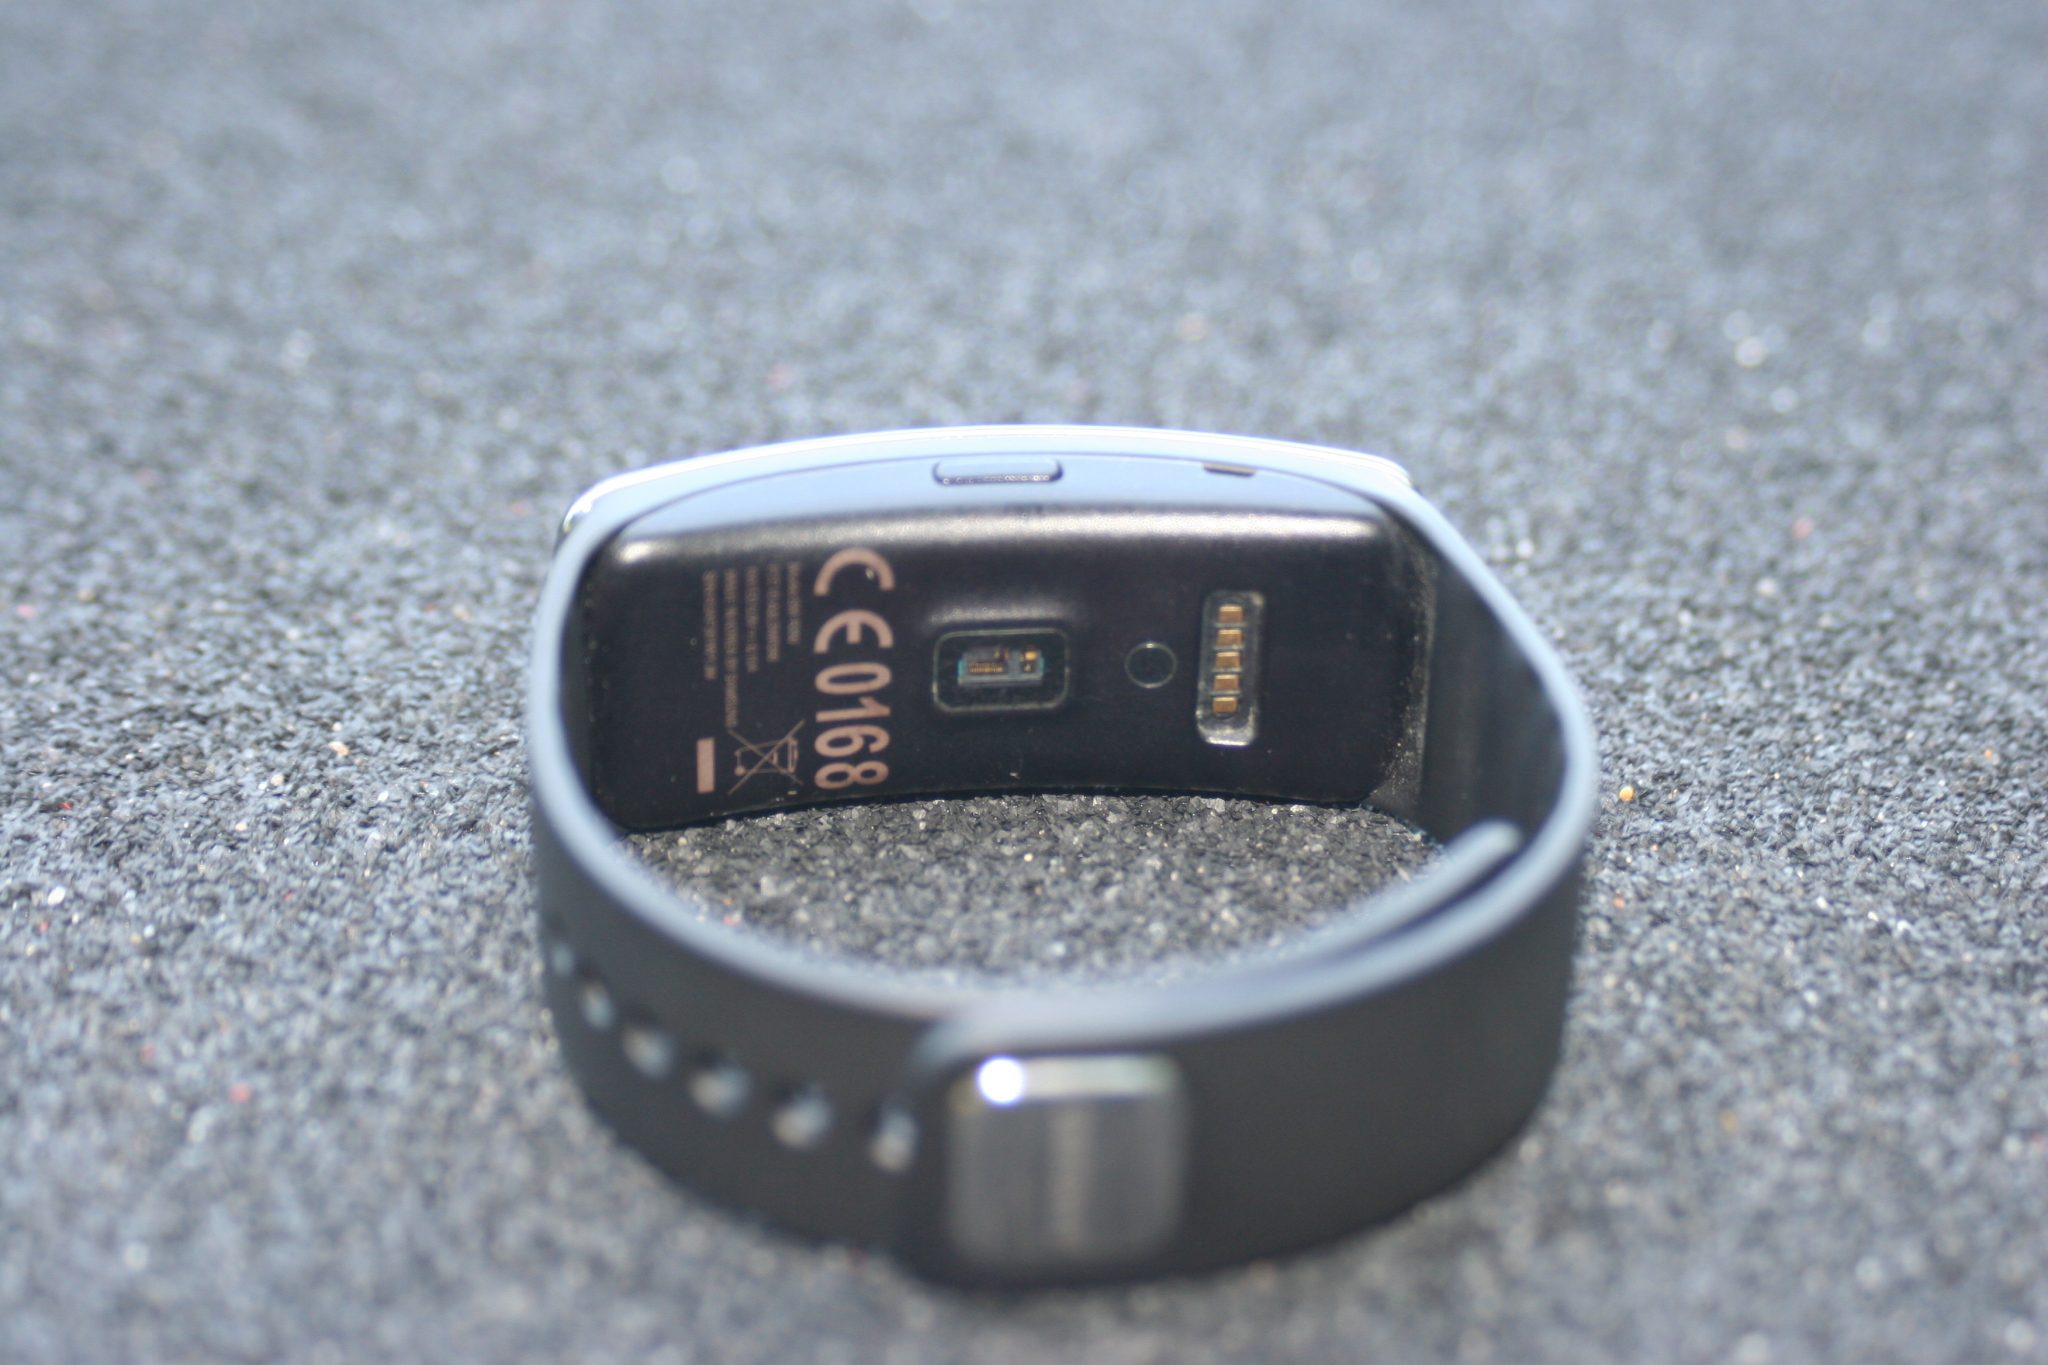 Samsung Gear Fit - Small Sensor Area